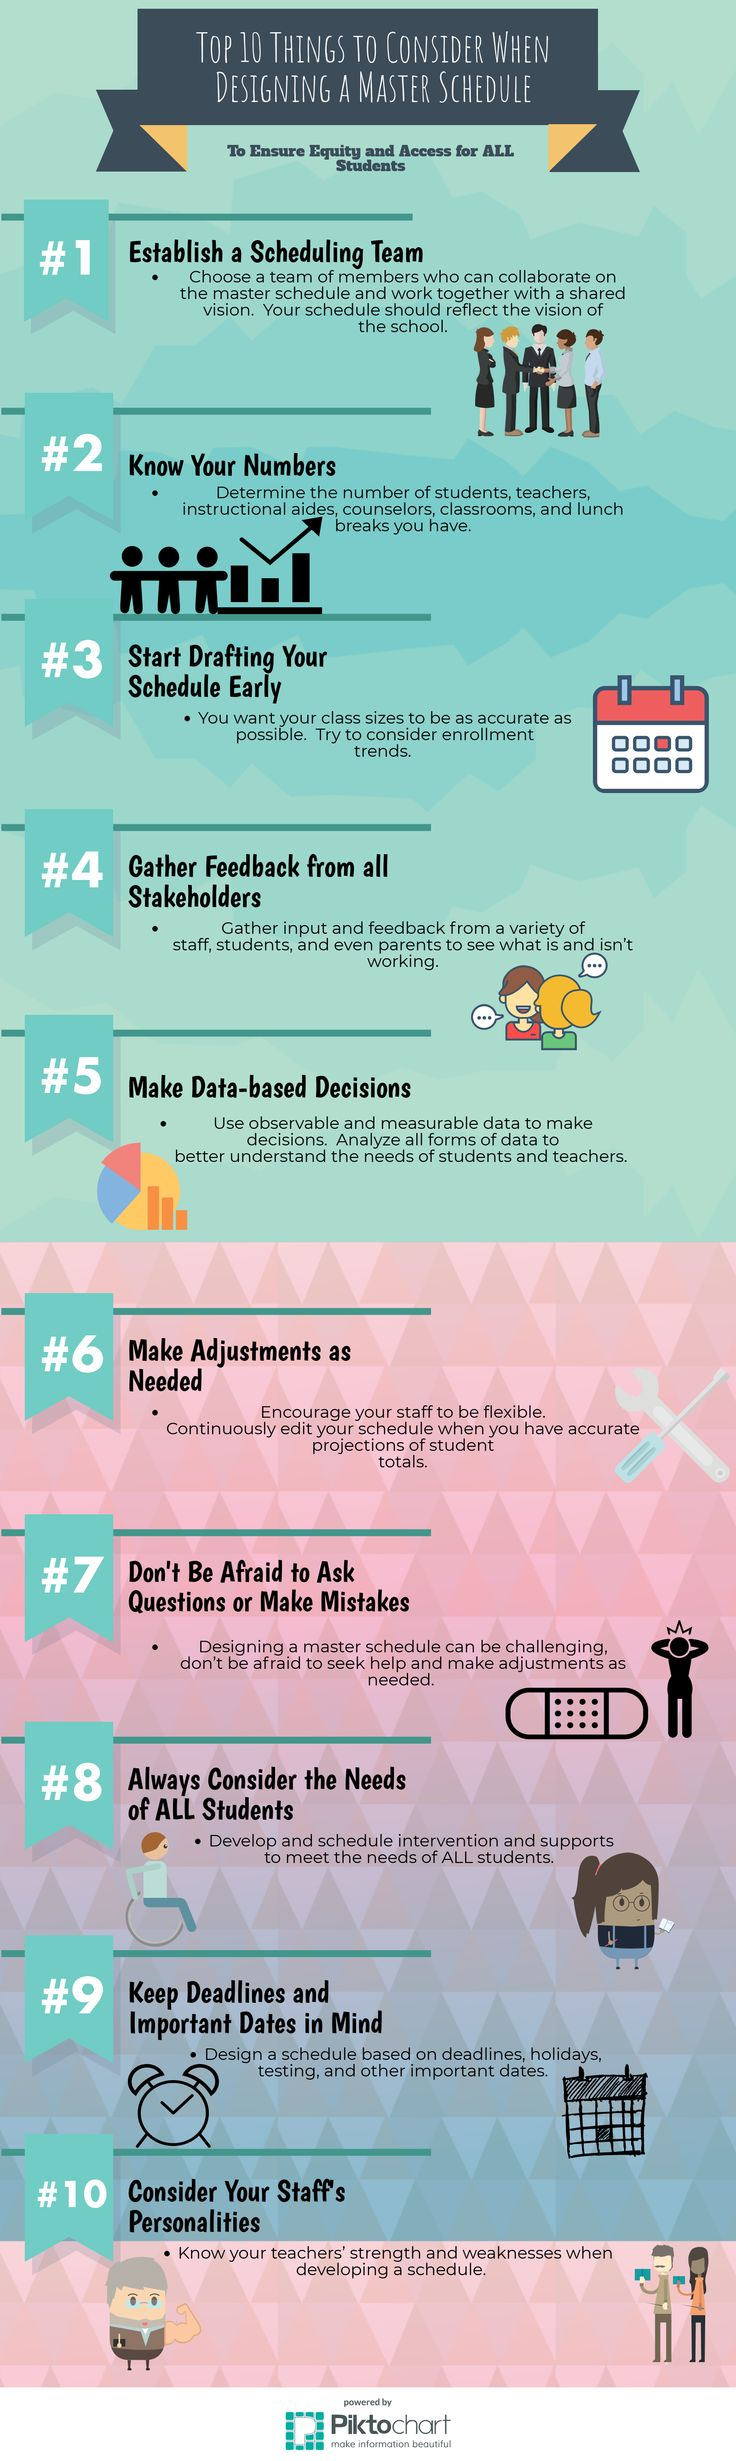 Educational Leadership: Top Ten Tips for Designing a Master Schedule